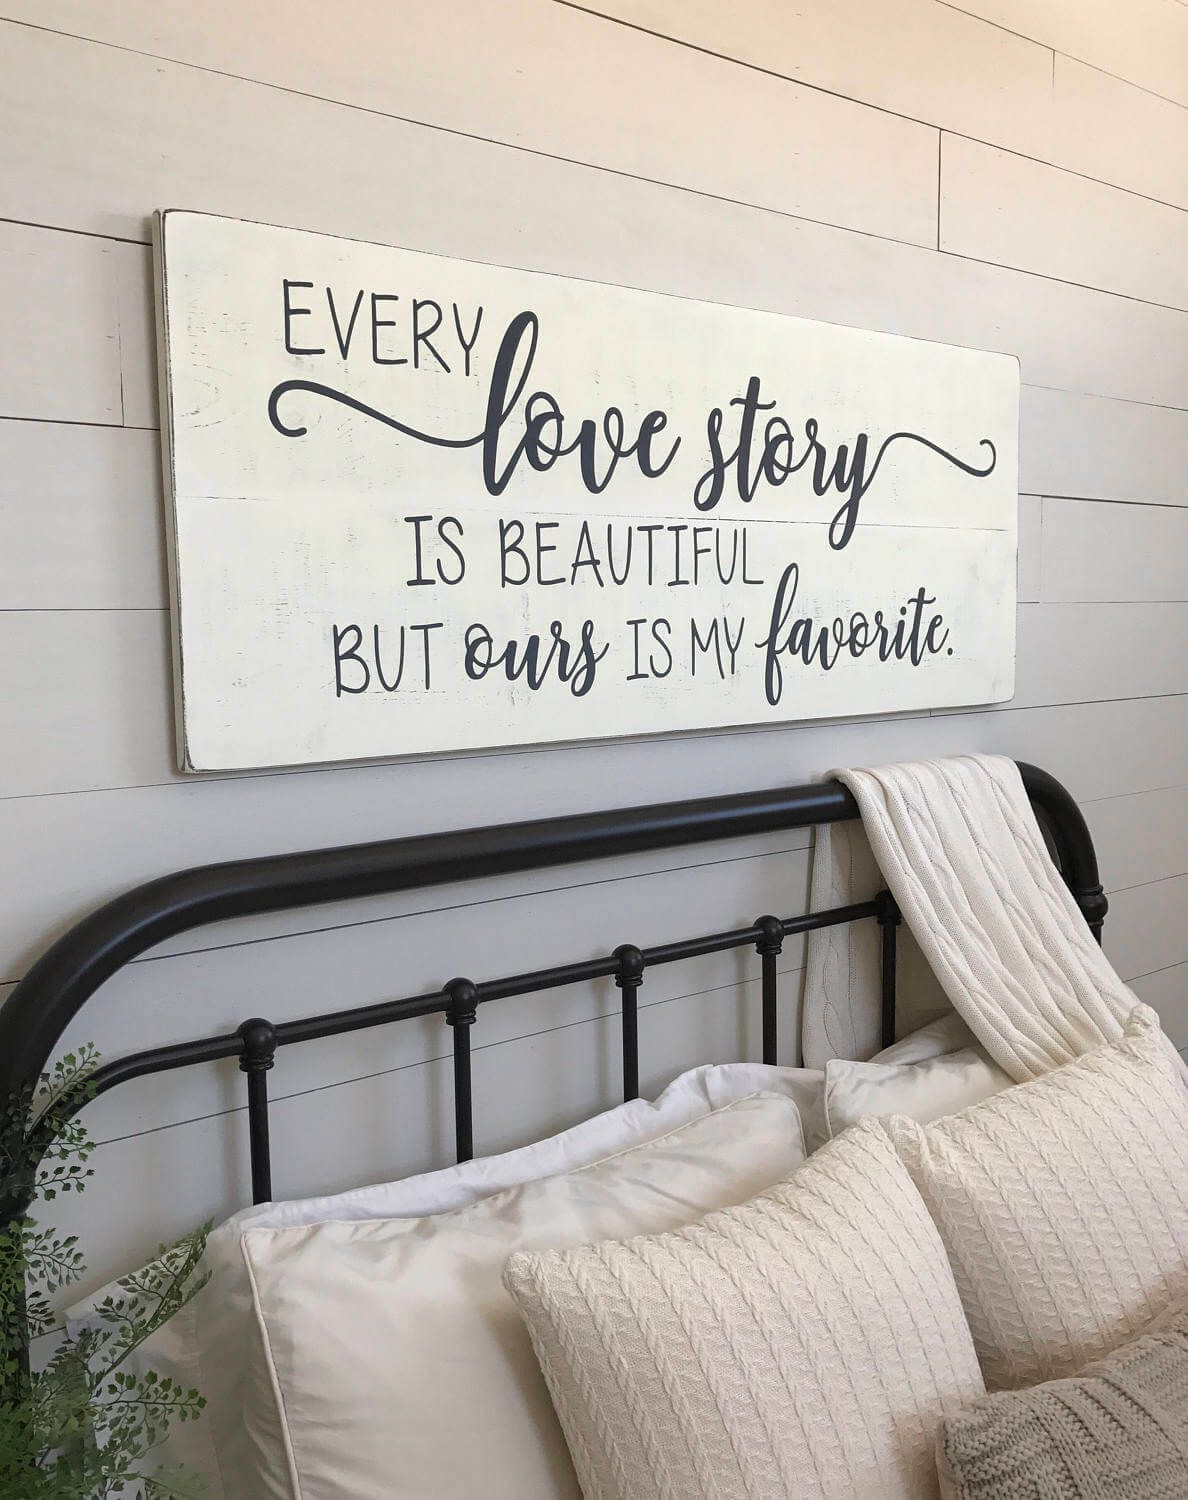 20 Gorgeous Vintage Wall Decor Ideas To Add Old Fashioned Charm To Your Home Bedroom Wall Decor Above Bed Wall Decor Bedroom Bedroom Vintage